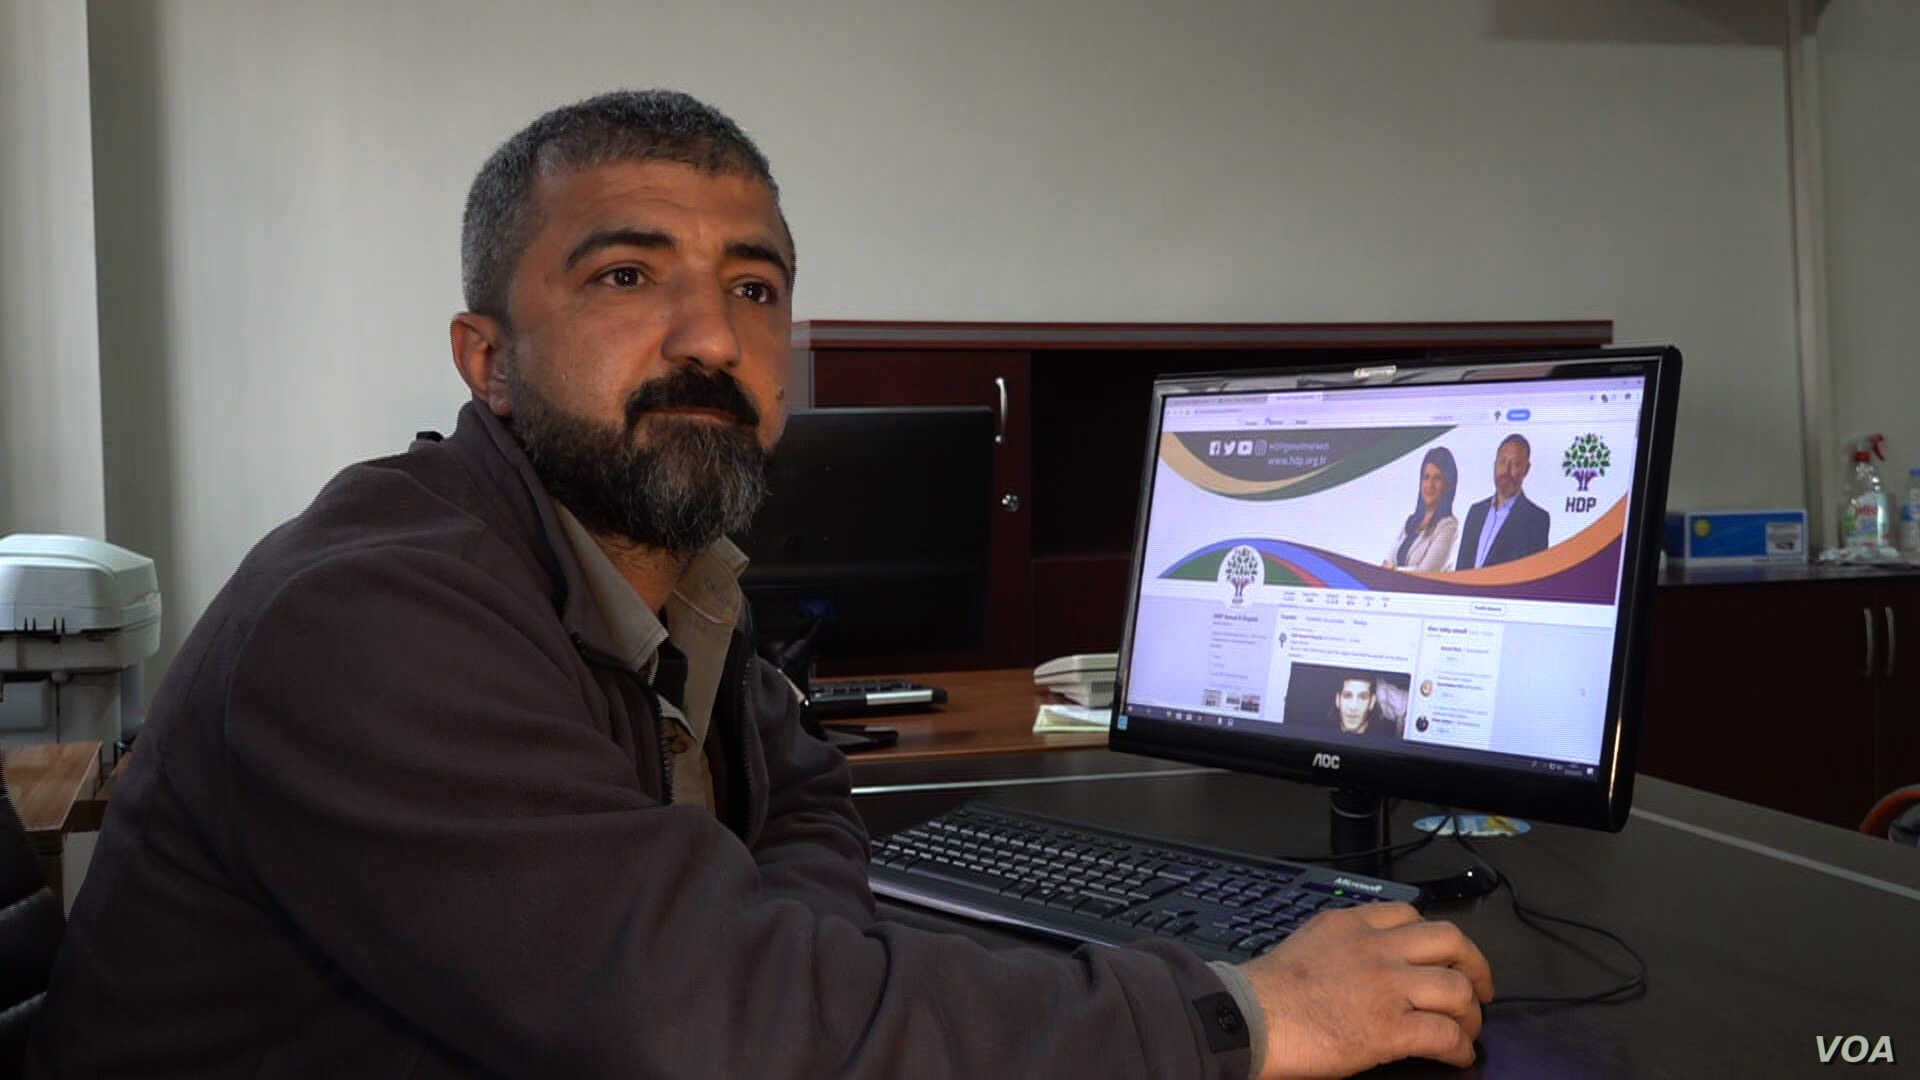 Vedat Dag Diyarbakir's  HDP's social media chief says extensive spread use of smartphones and the net savviness of the local electorate helps in their efforts to reach out to supporters. (DJones/VOA)